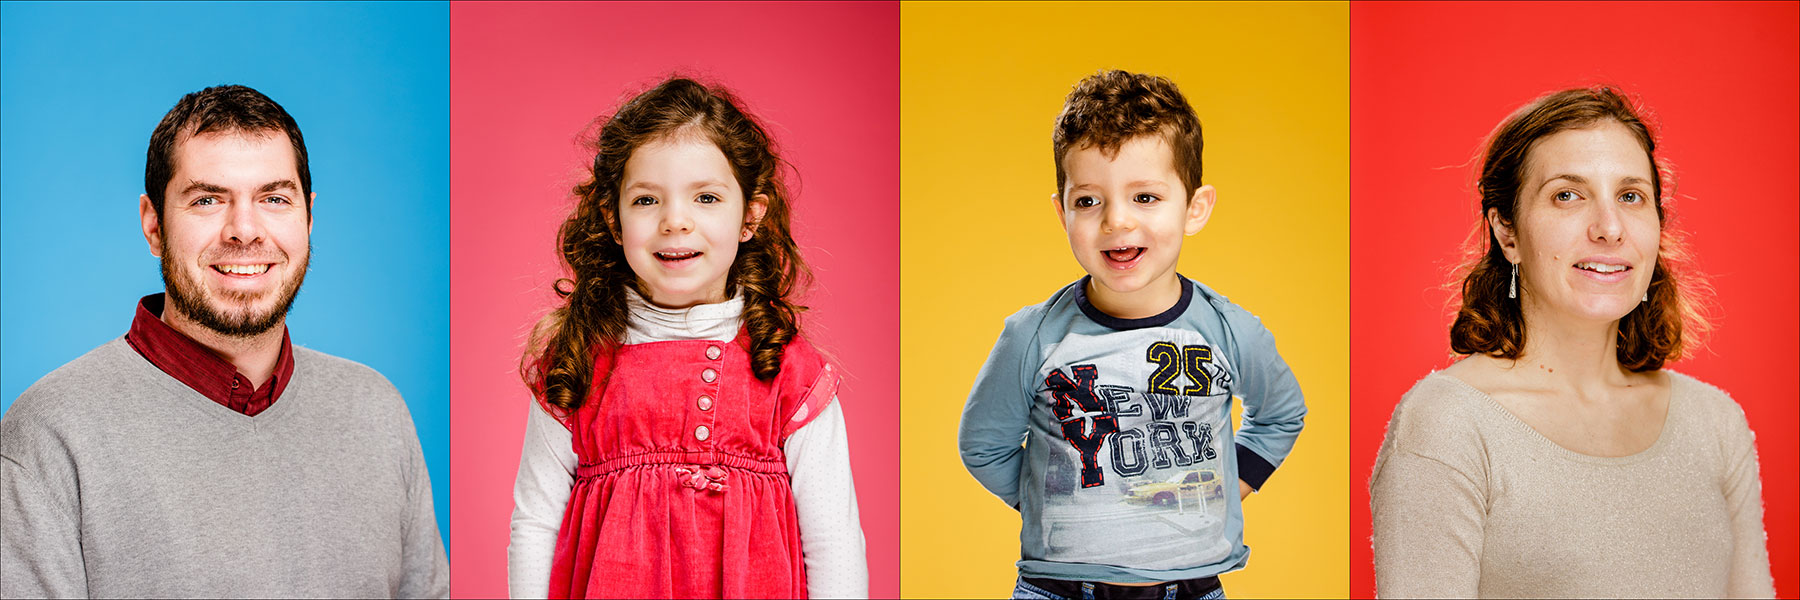 Photographe seance photo famille enfant toulouse shooting